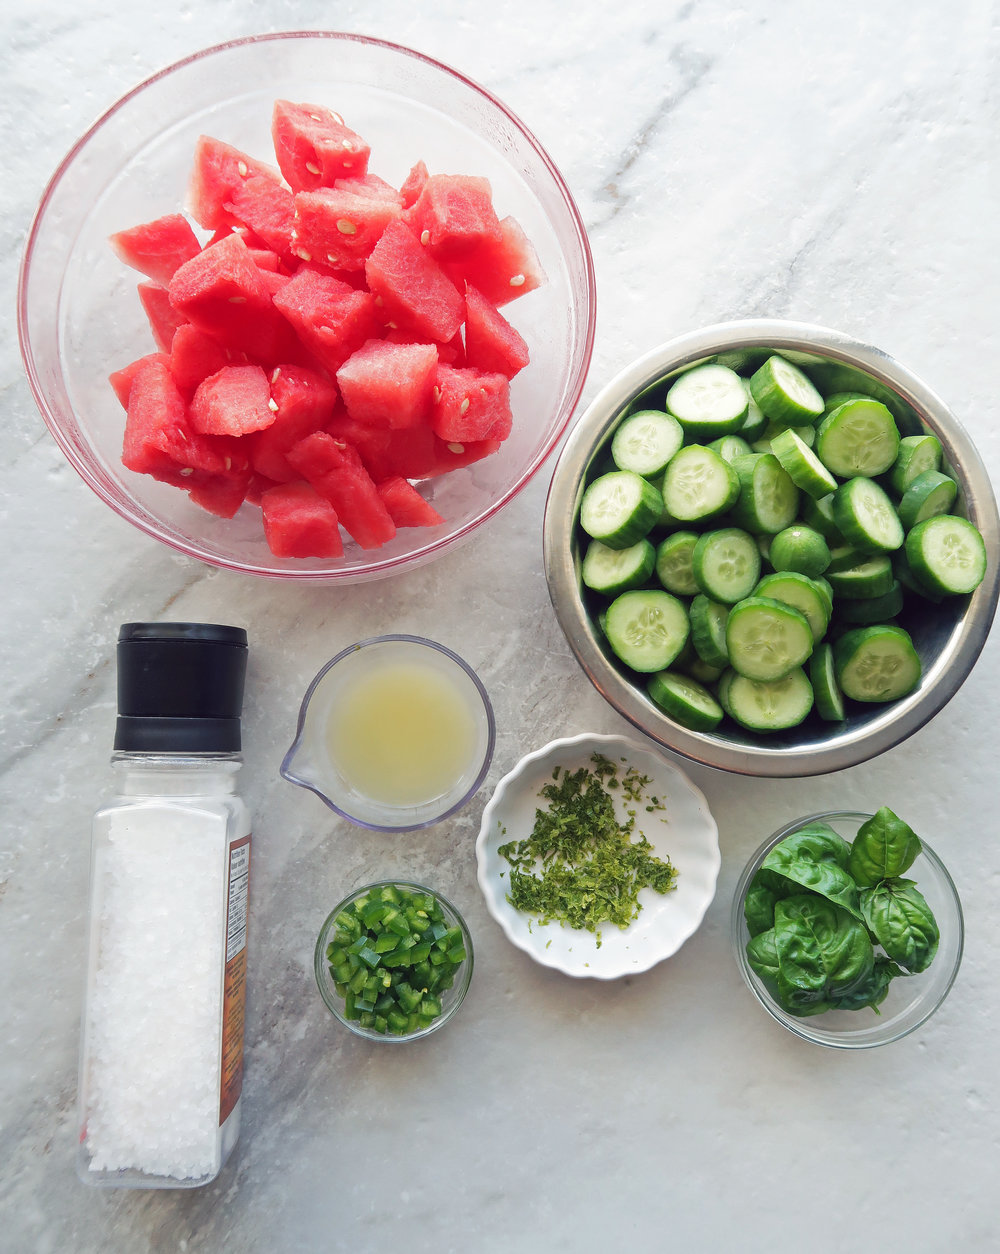 Bowls containing chopped watermelon, cucumber, and jalapeno along with lime zest, lime juice, and basil leaves.